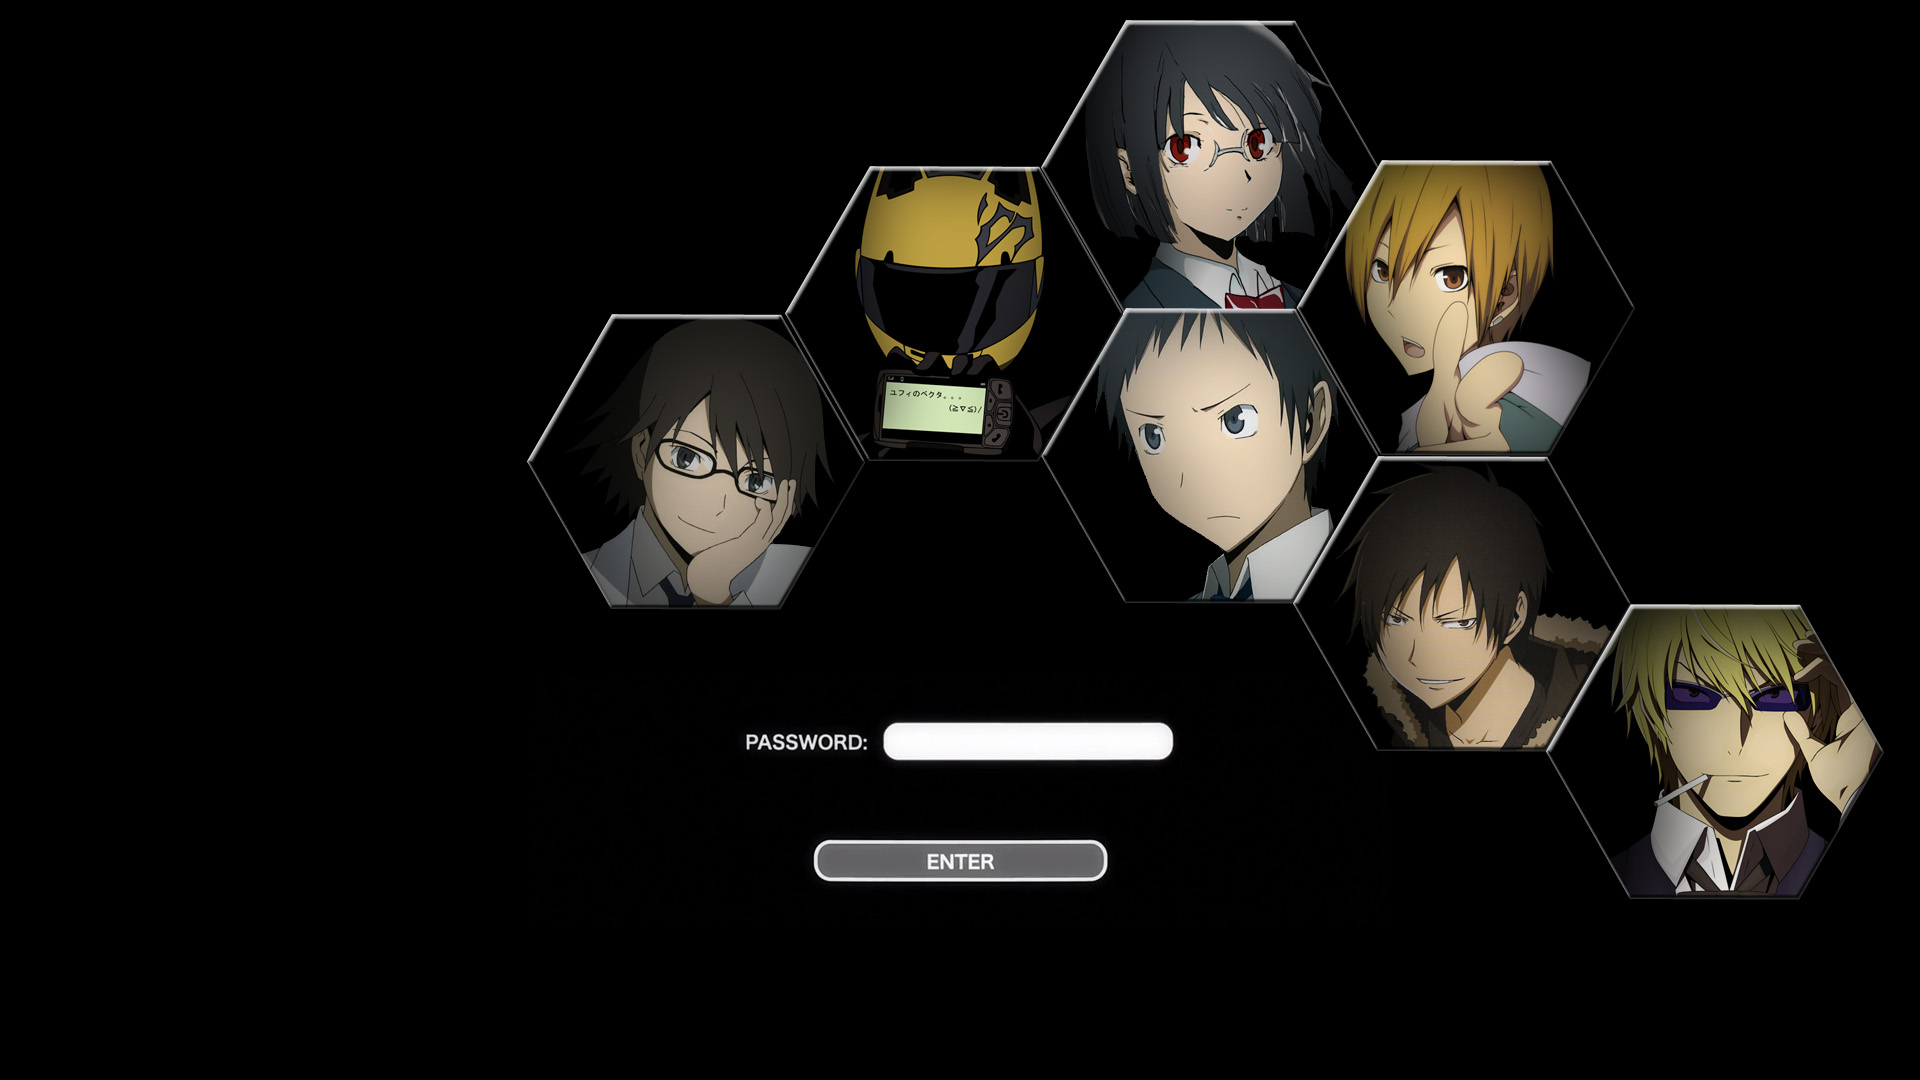 durarara wallpaper by bankaii94 on deviantart